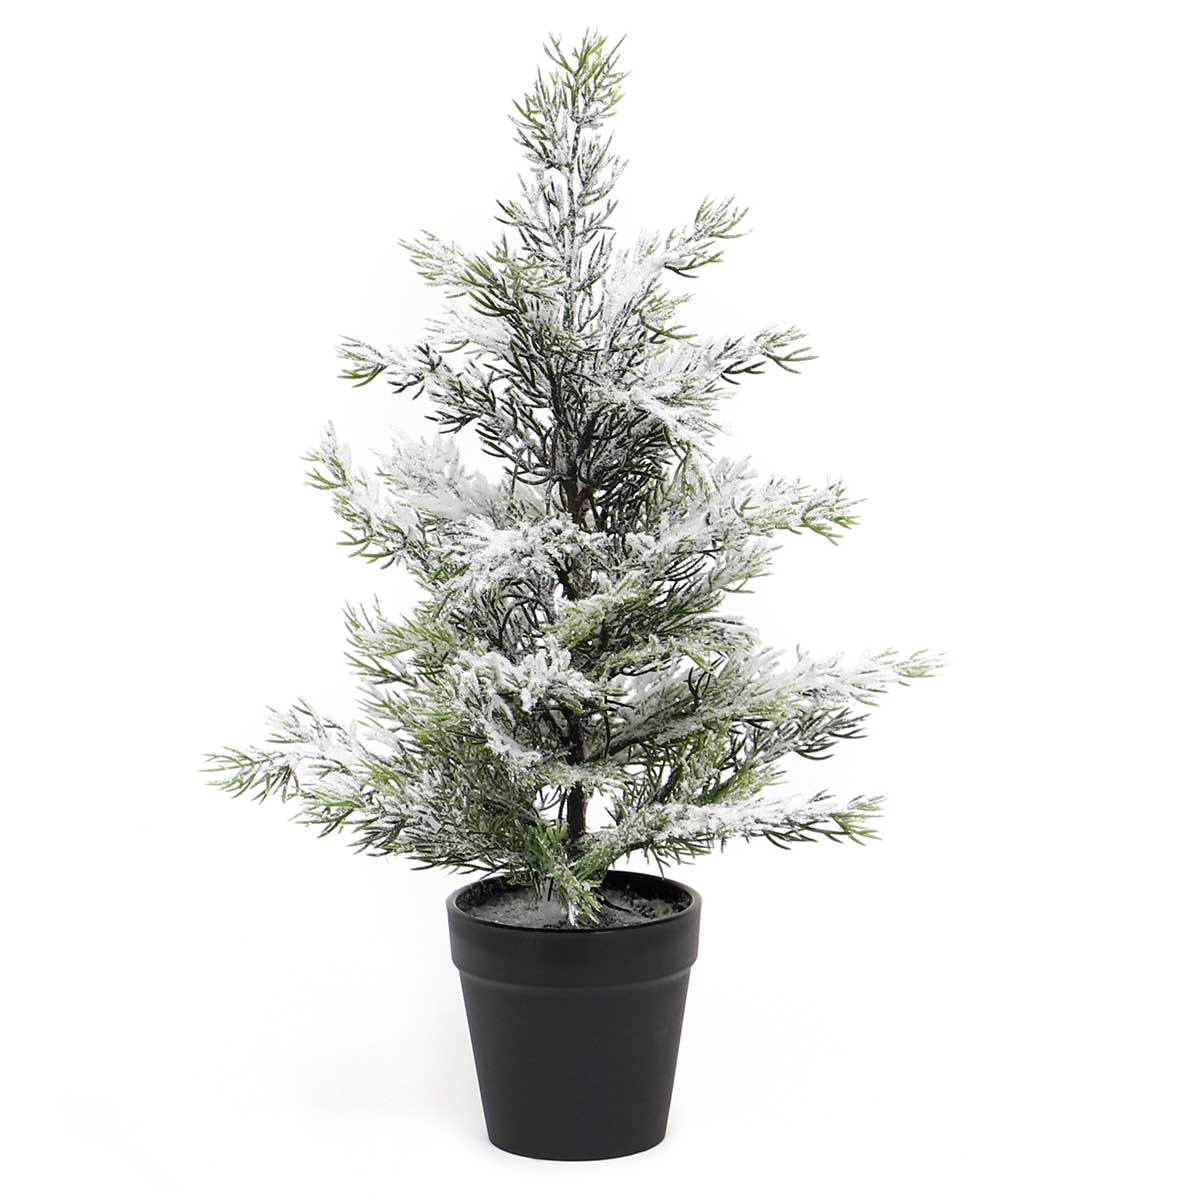 SNOWED EVERGREEN TREE IN BLACK POT SMALL